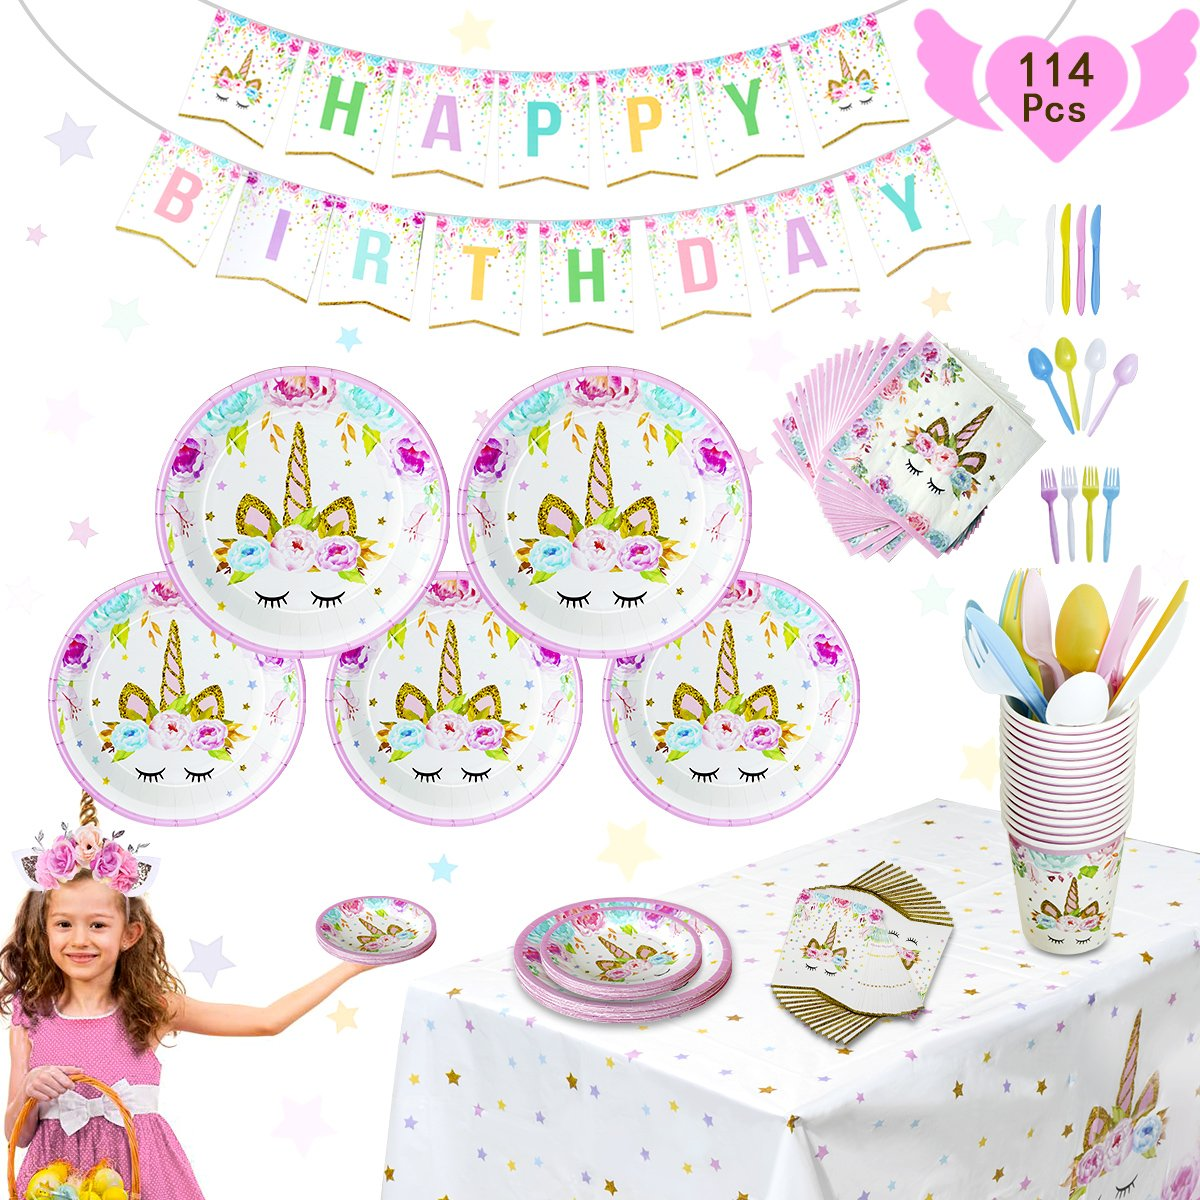 Pink Unicorn Party Supplies Set - 114 Pcs Totally 16 Guests - Unicorn Birthday Party Supplies Decorations Includes Disposable Plates, Tablecloth, Banner For Girls, Kid 1st Birthday, Theme Party